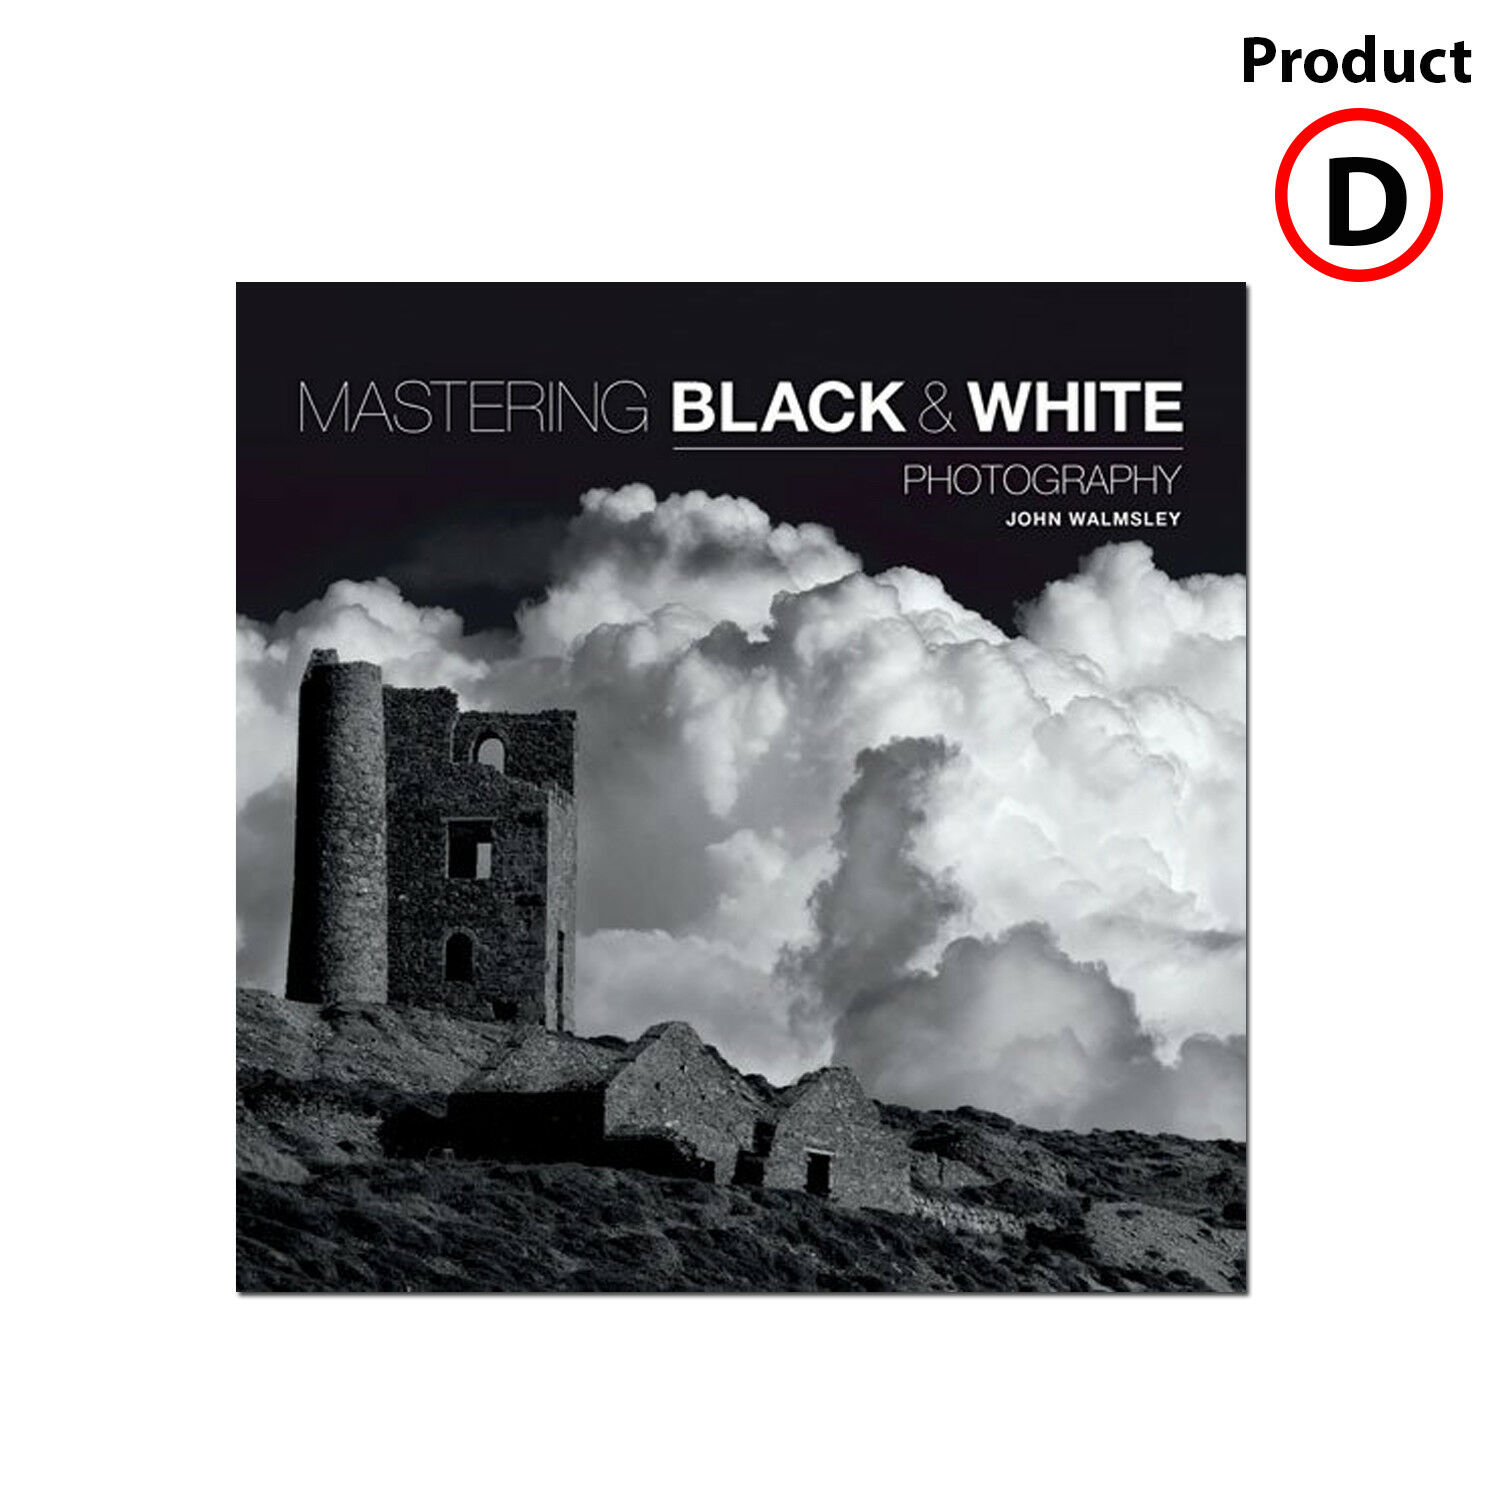 Mastering black white photography by john walmsley paperback 2015 for sale online ebay